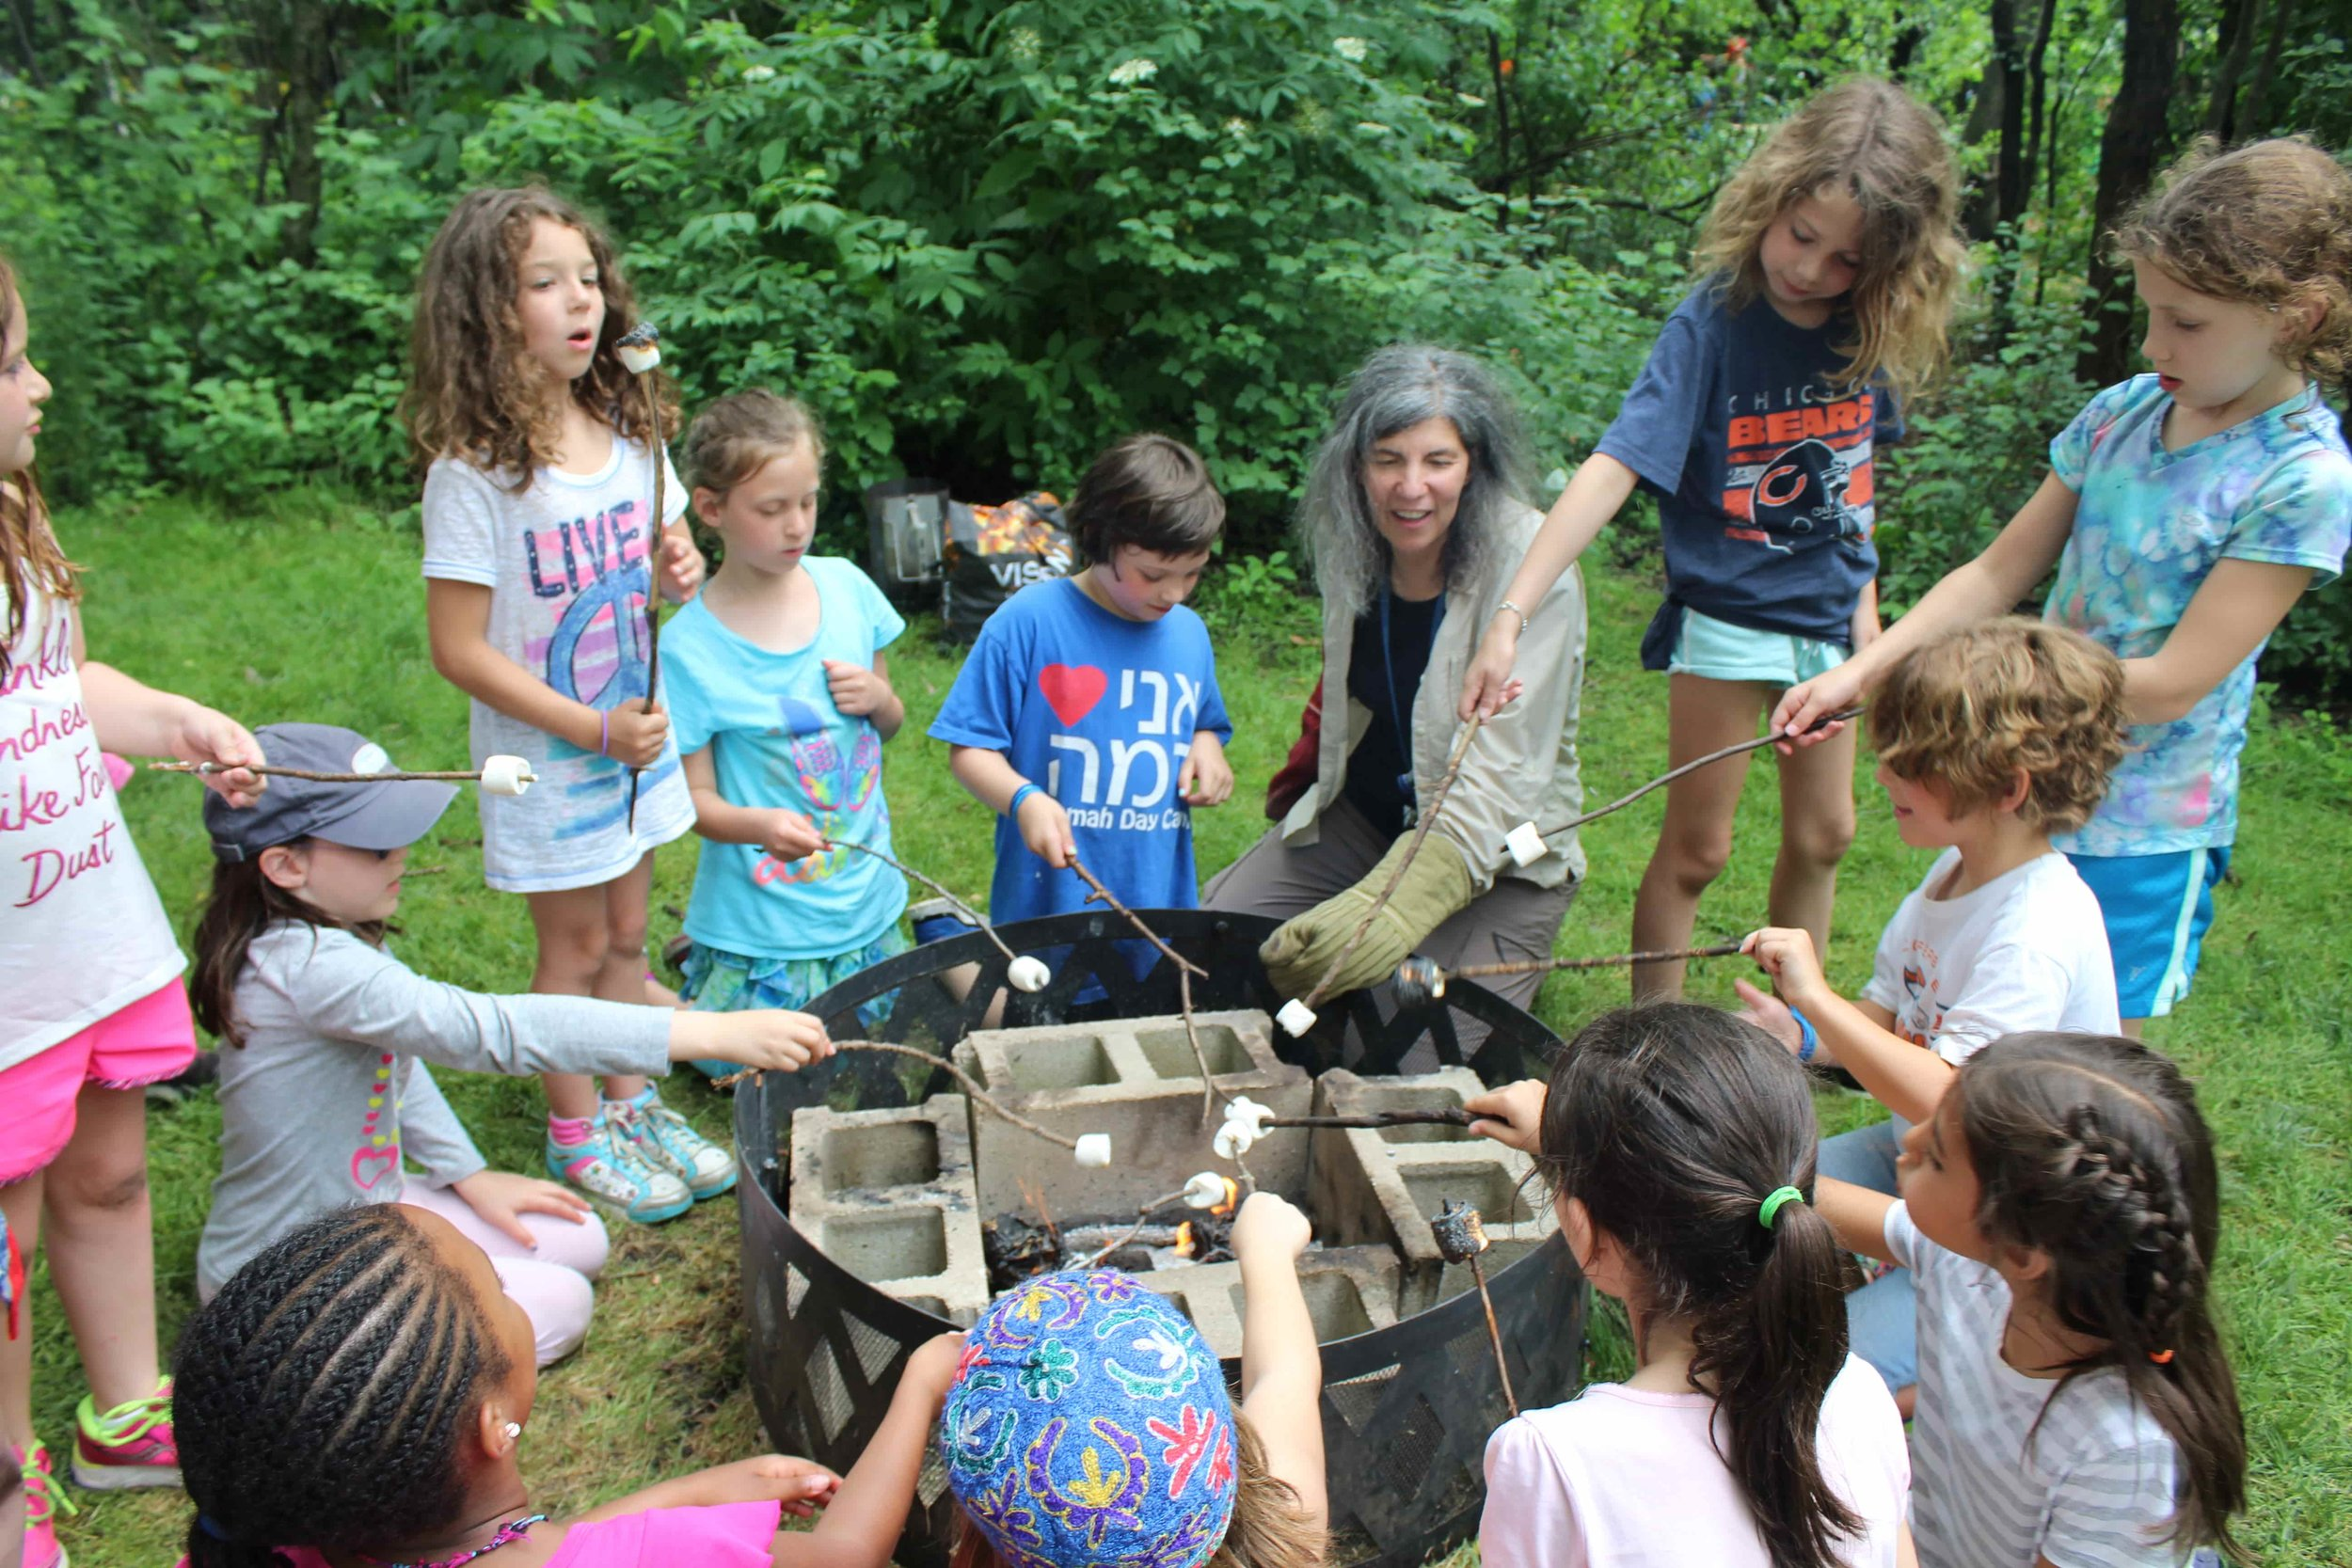 בישול / Cookout - Each week your child's kevutzah (group) will hone their skills in group decision-making, compromise, and working together while they work as a team to chop, spread, mix and pour, creating a delicious lunch. Campers experience a variety of food choices each week, and enjoy the wooded outdoor eating experience.